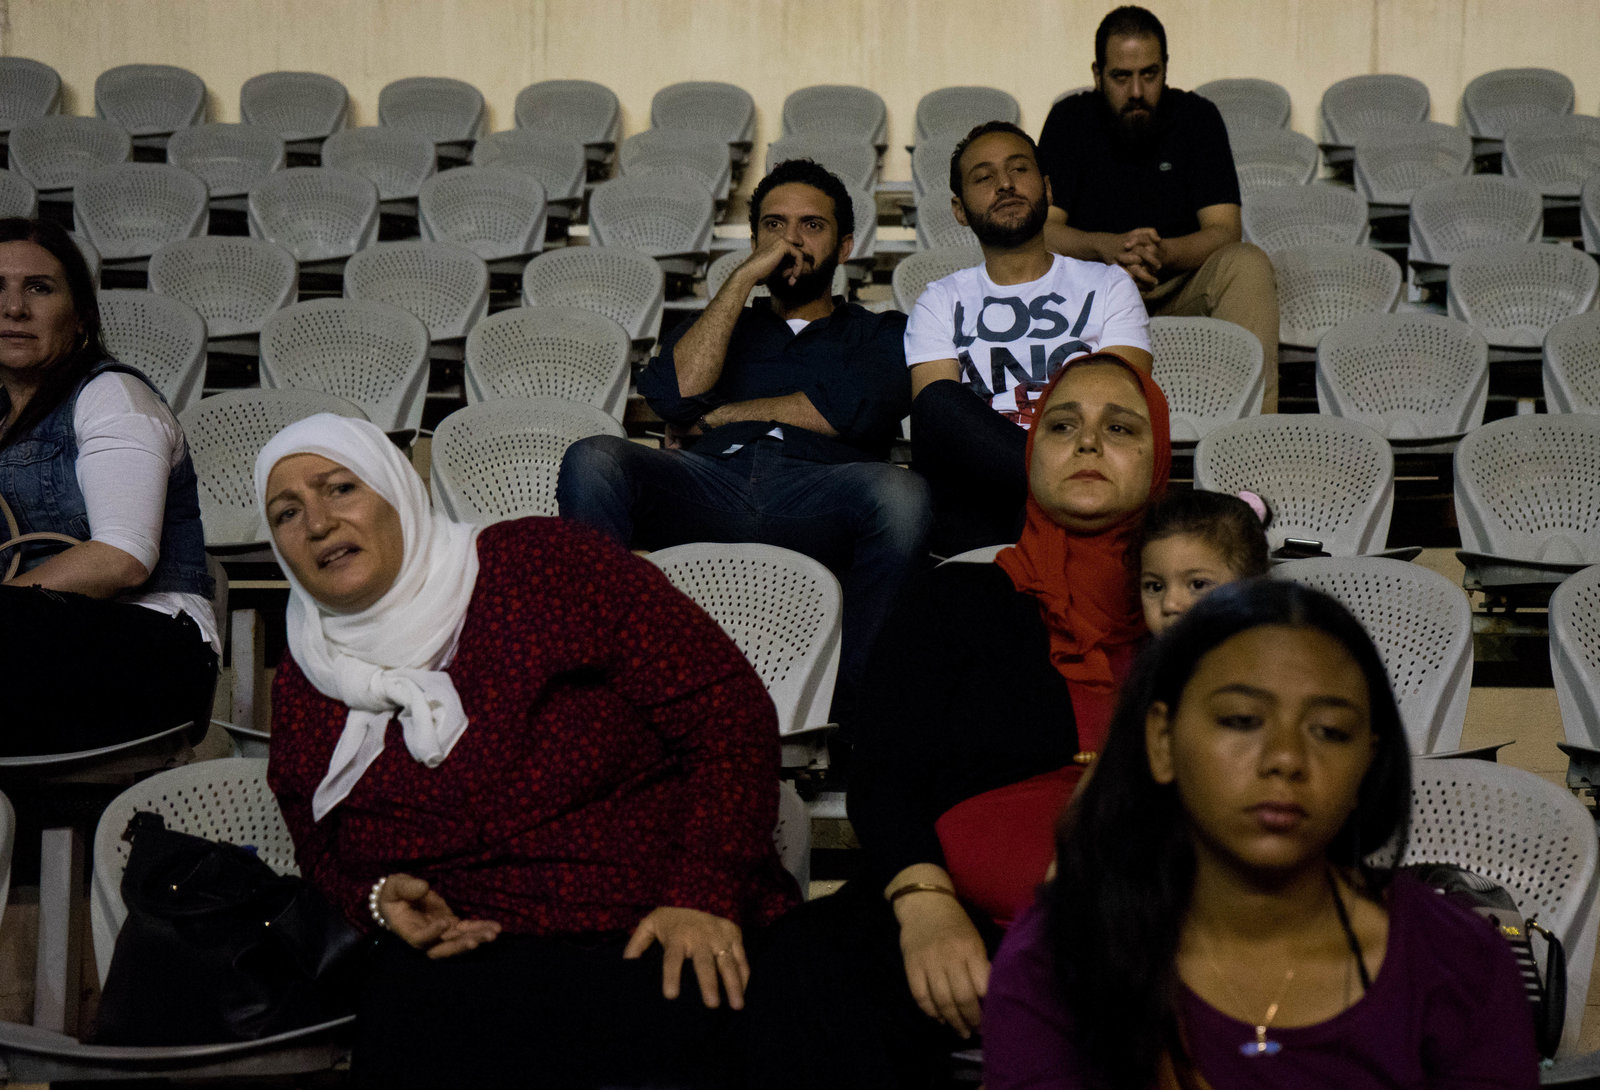 Family and friends watch the CaiRollers from the stands. While families are usually supportive, they have concerns about the women playing such an aggressive game, says Lina El-Gohary.Photo: Marwa Sameer Morgan